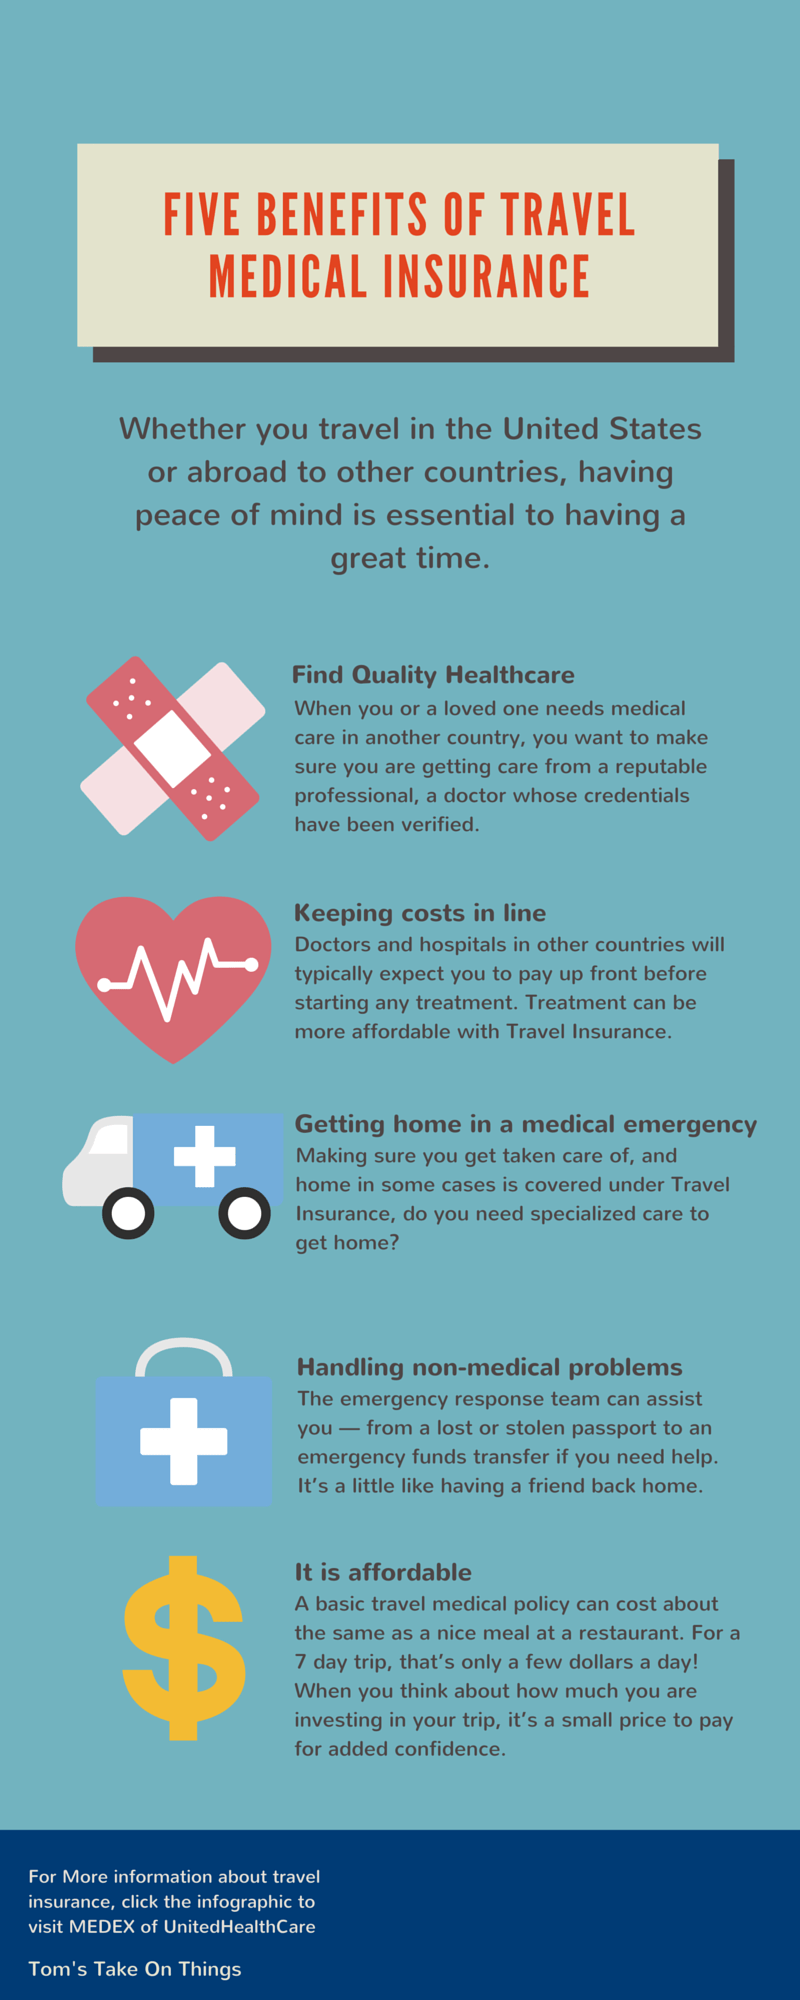 Five Benefits of Travel Medical Insurance